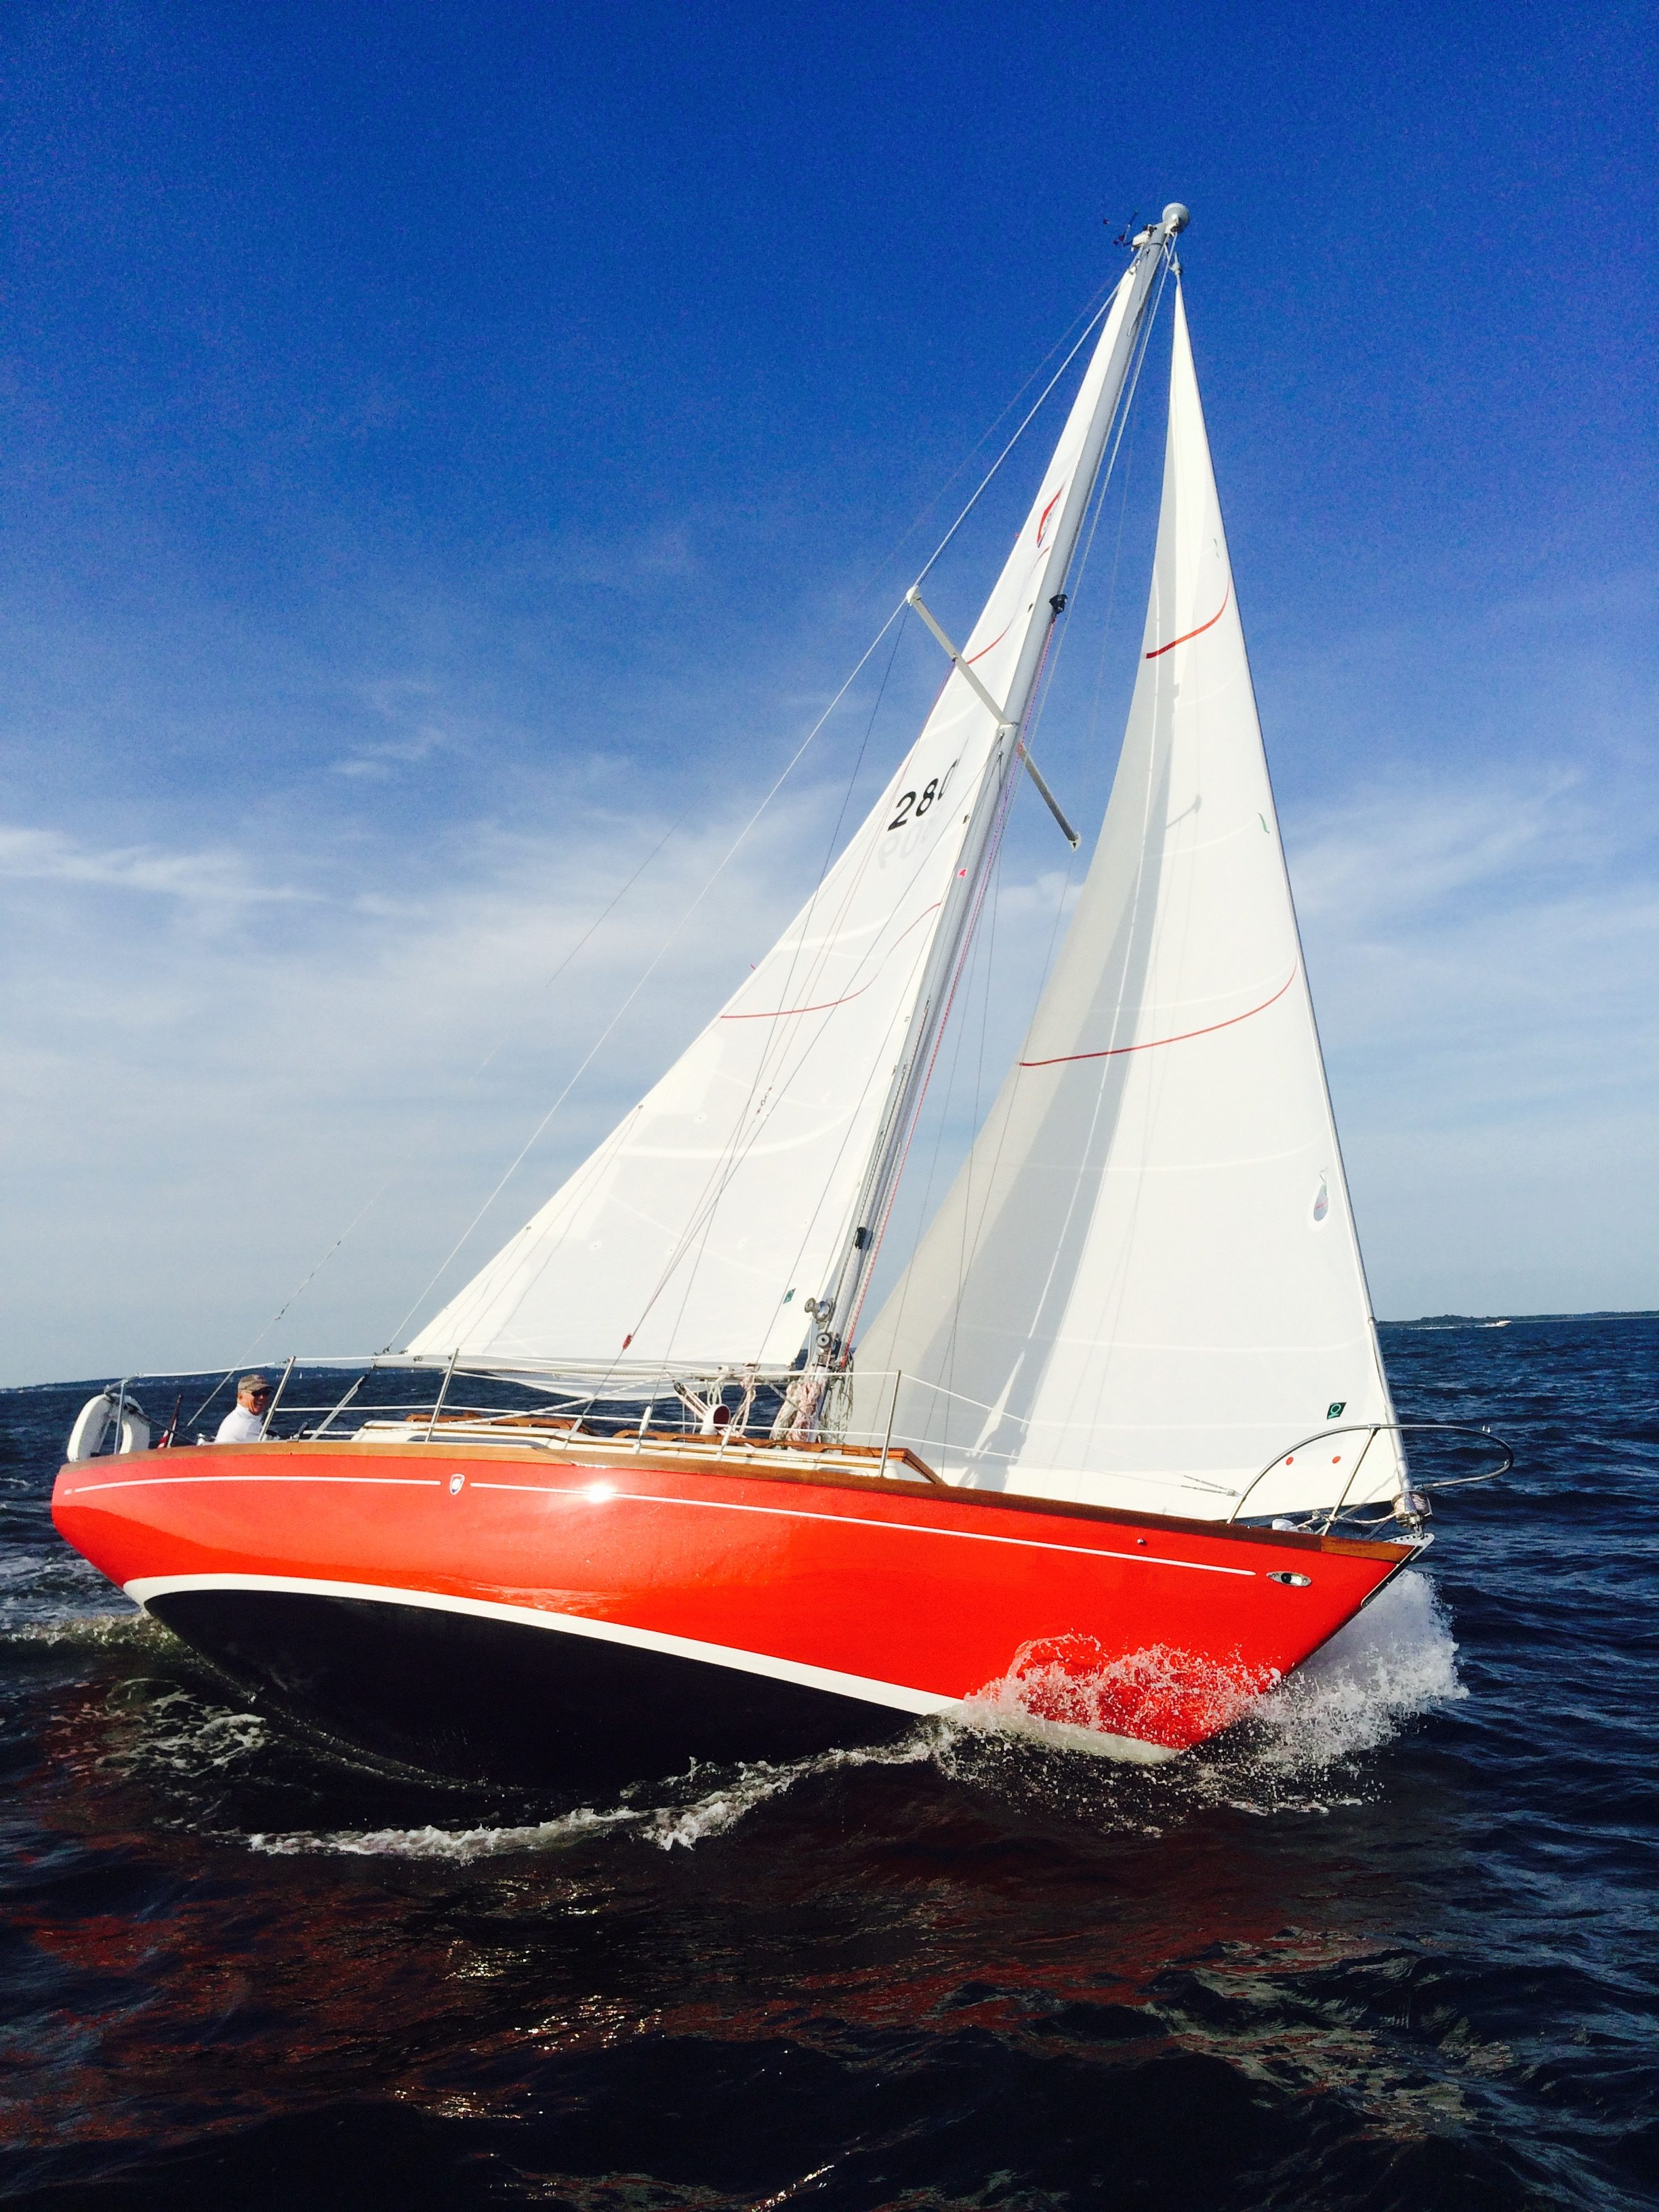 Colombia 32'- Fully restored and being enjoyed by the owner